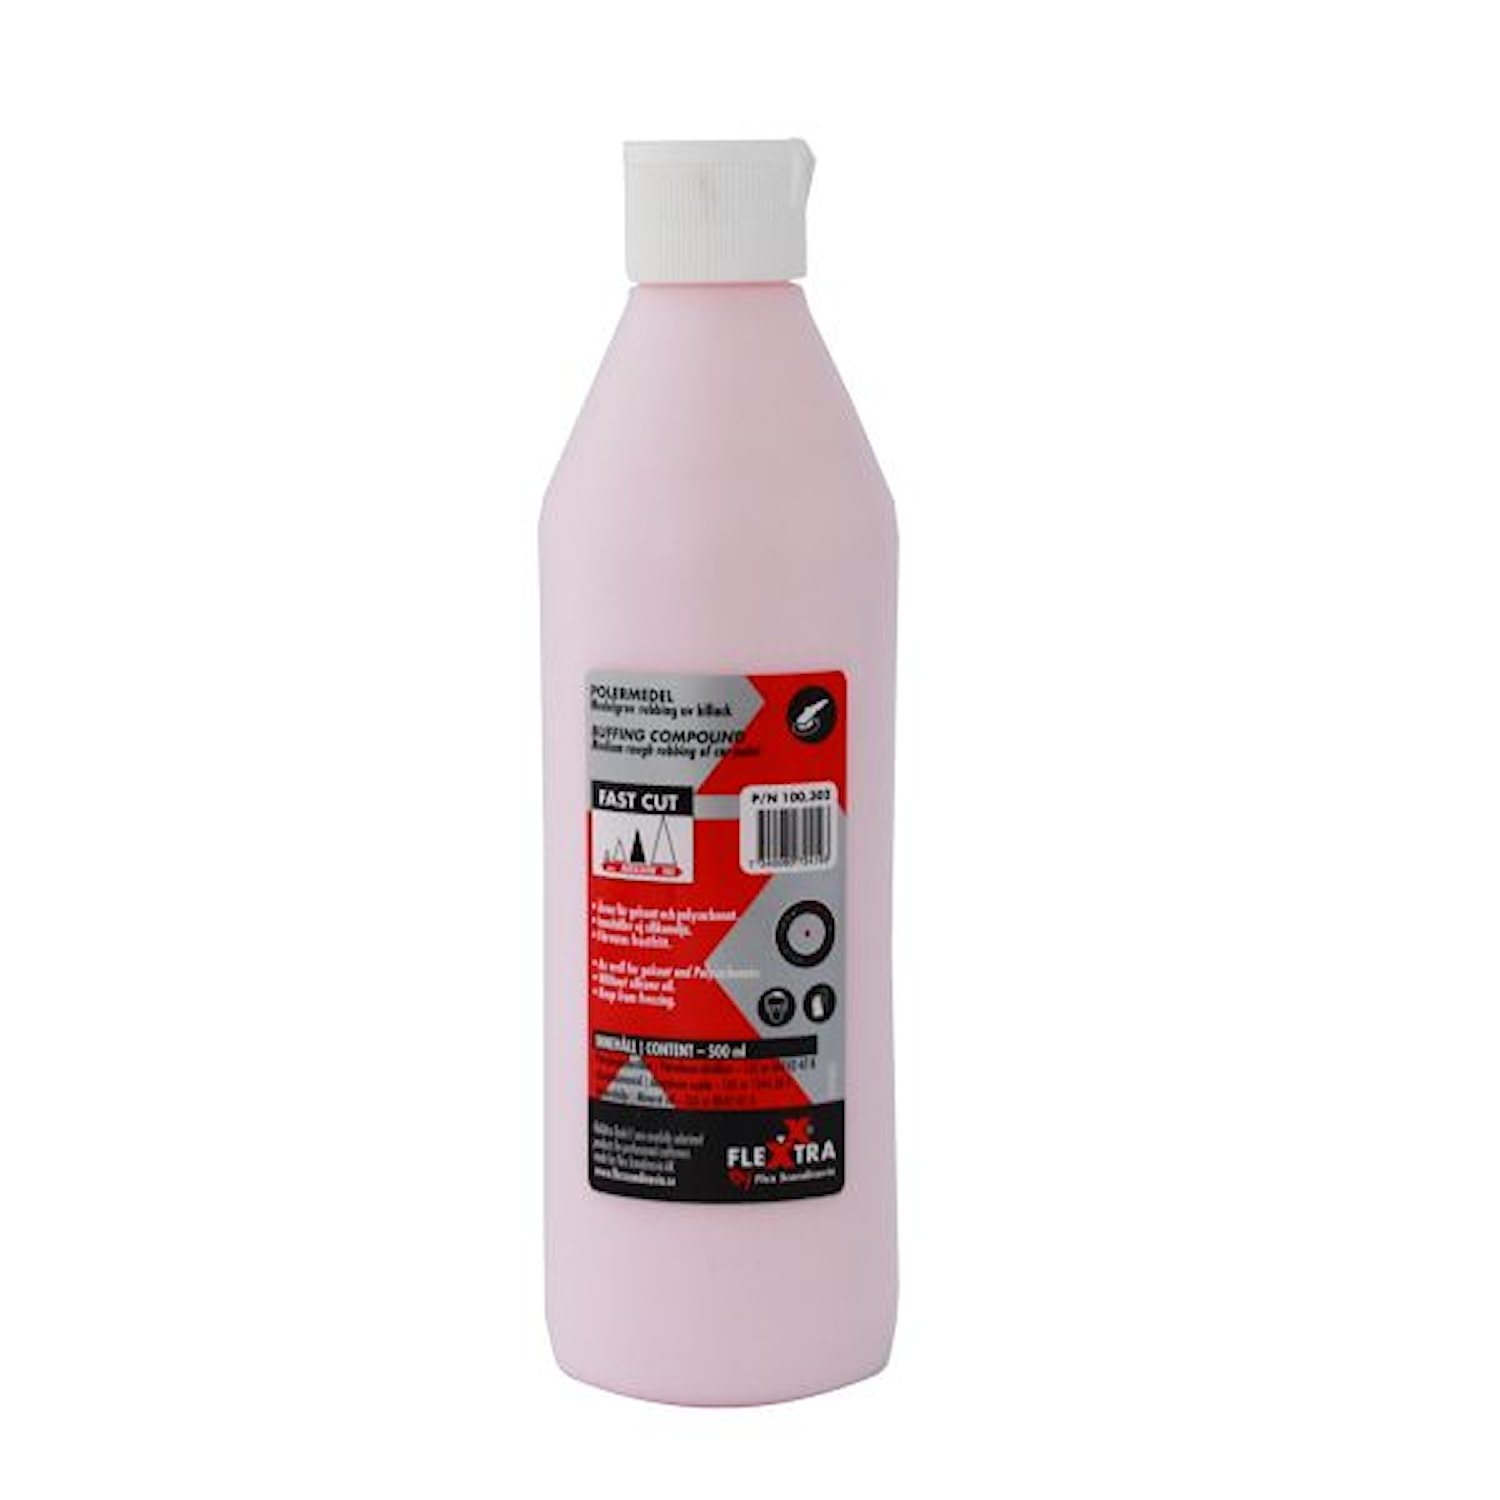 Fastcut, Rubbing, 500 ml